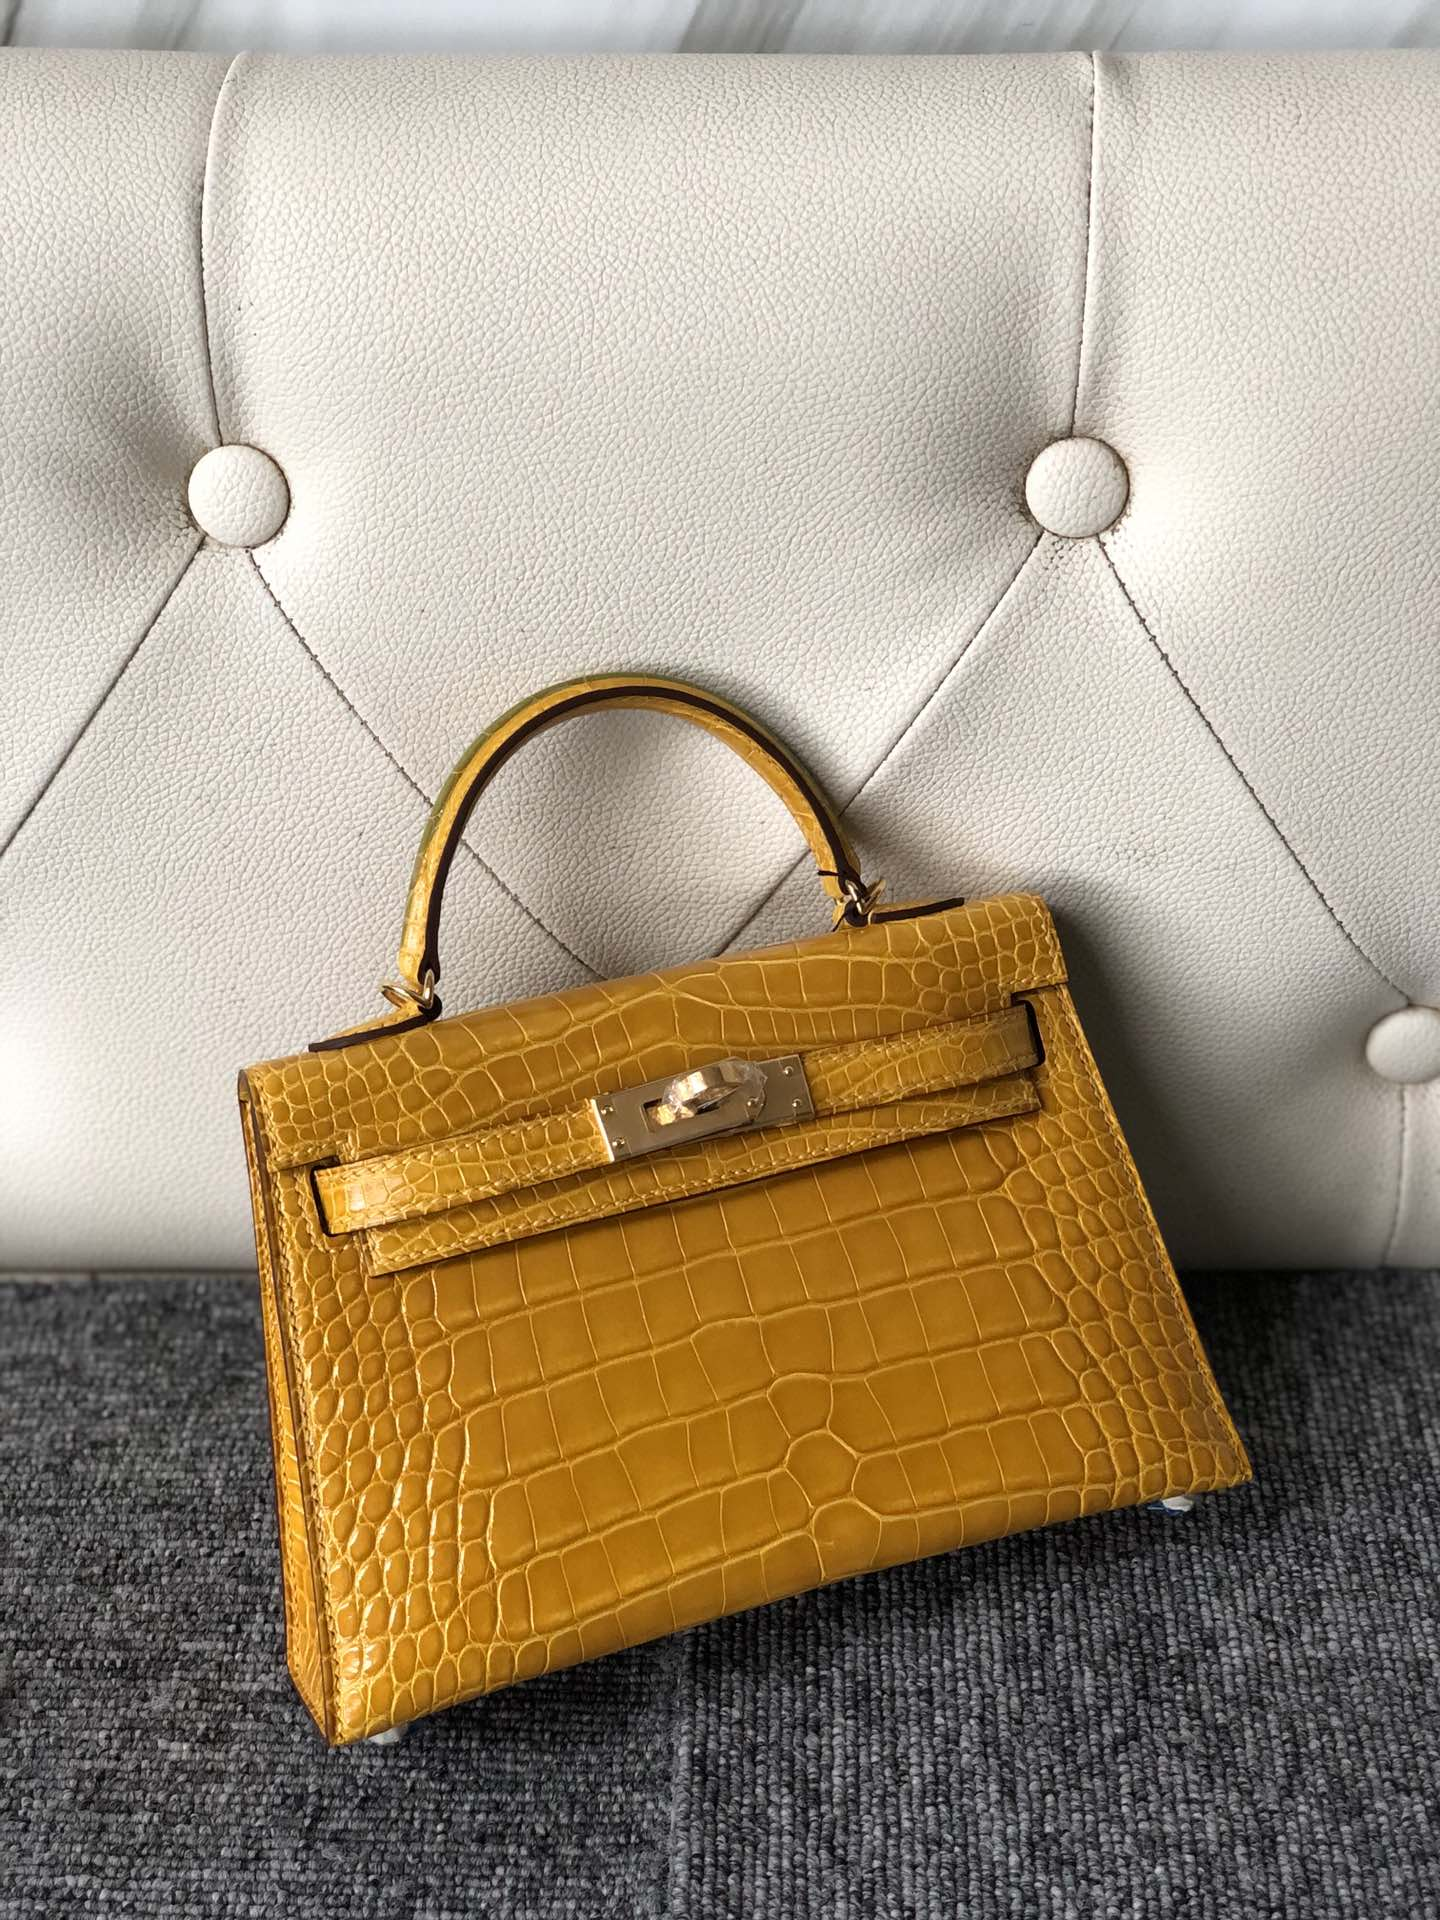 Stock Hermes Shiny Crocodile Minikelly-2 Clutch Bag in 9D Ambre Yellow Gold Hardware